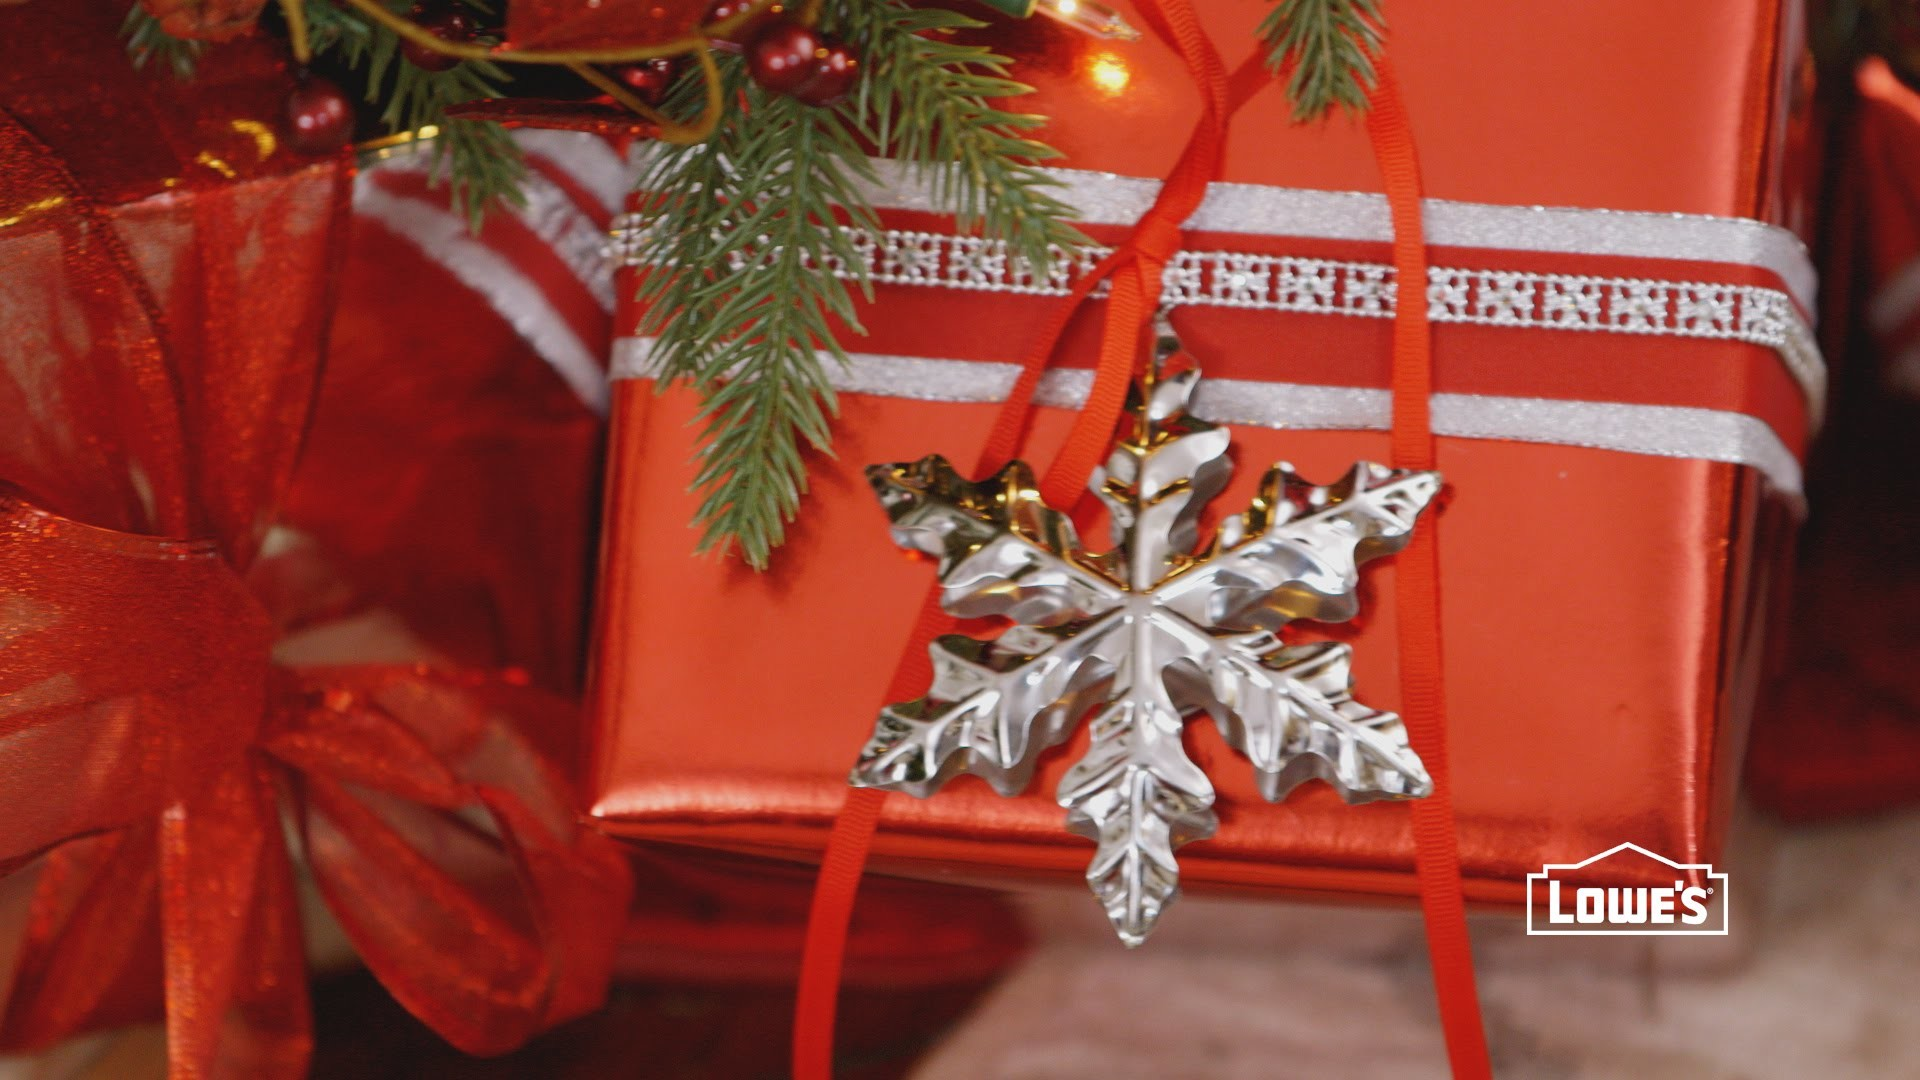 13 Ideas for Decorating with Ornaments